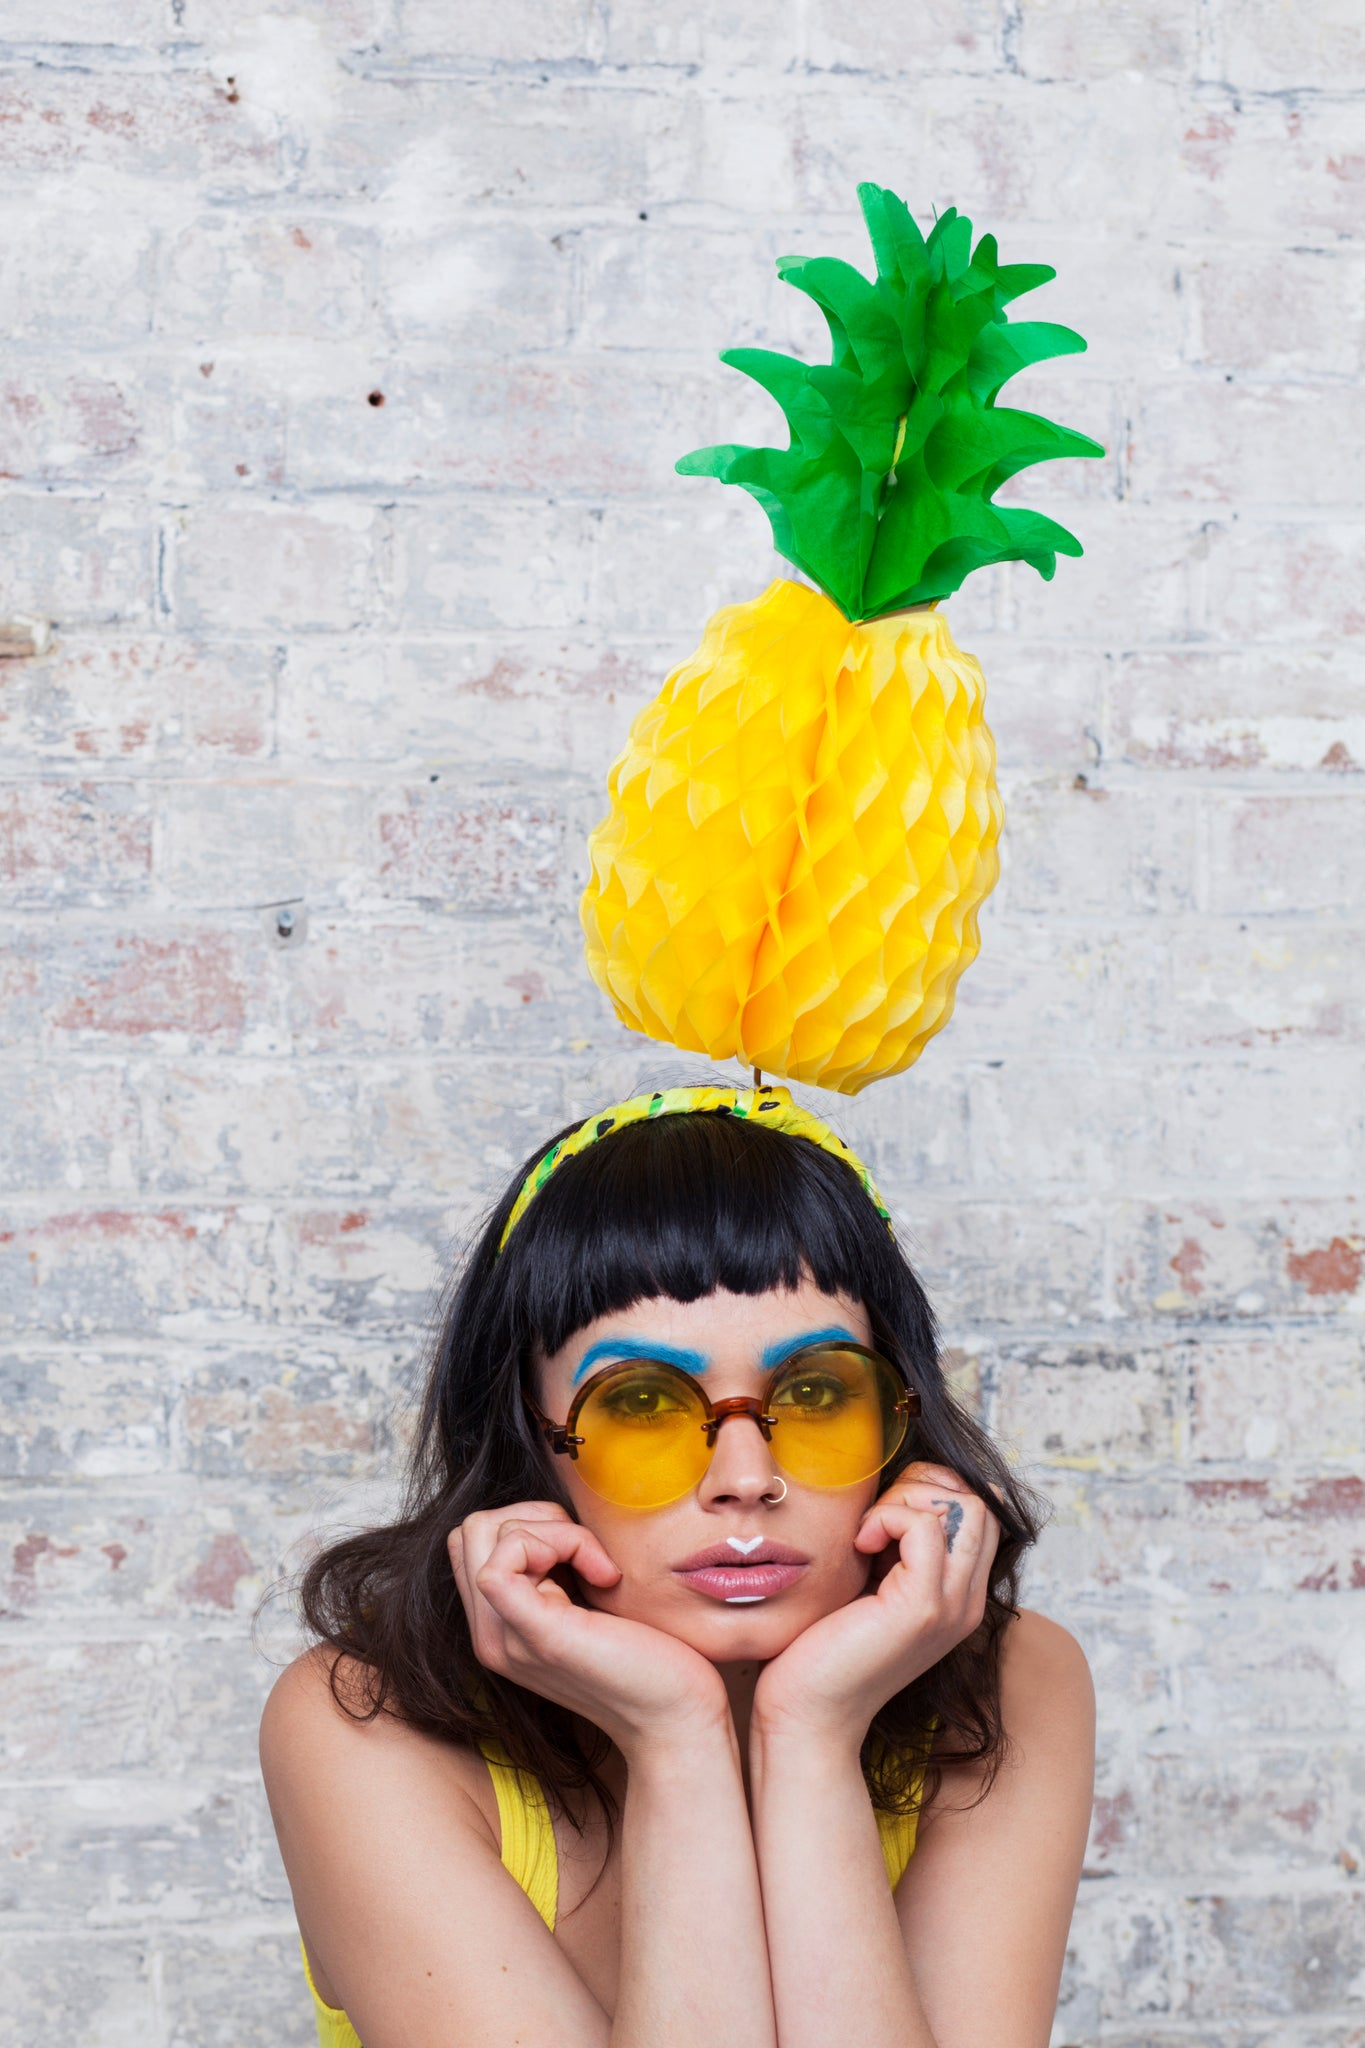 Festival Pineapple Headpiece - Ciara Monahan